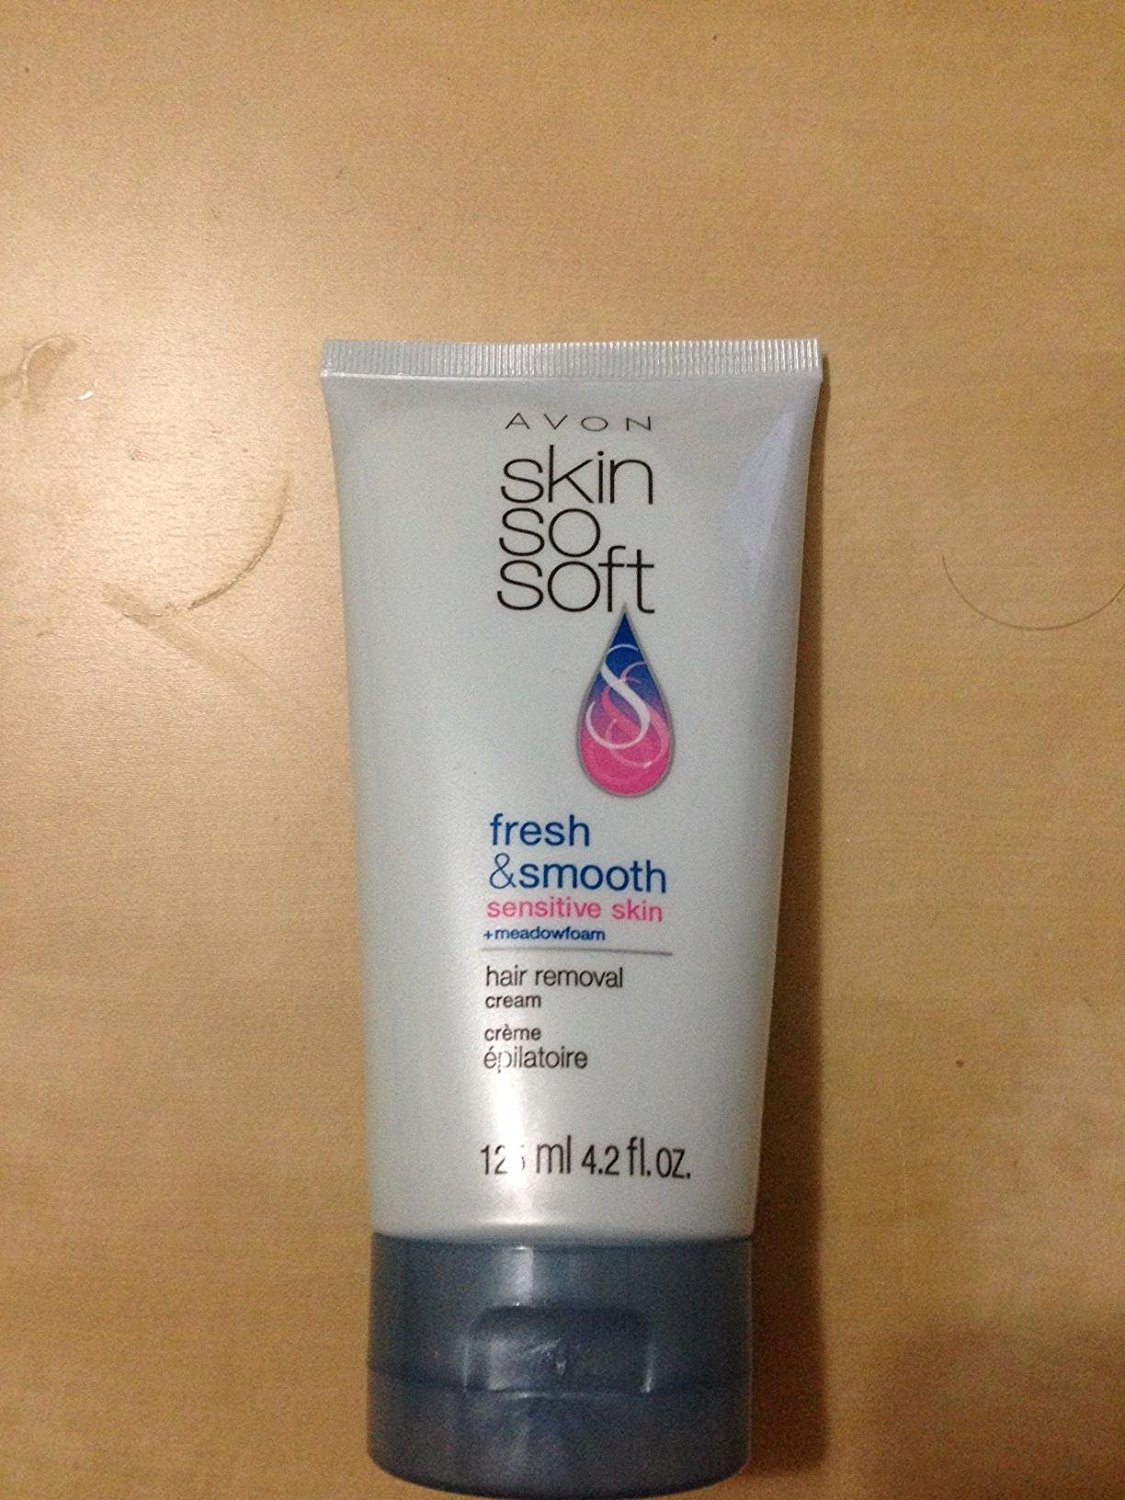 Avon SSS Fresh & Smooth Hair Removal Cream Sensitive Skin 4.2 Oz. product image